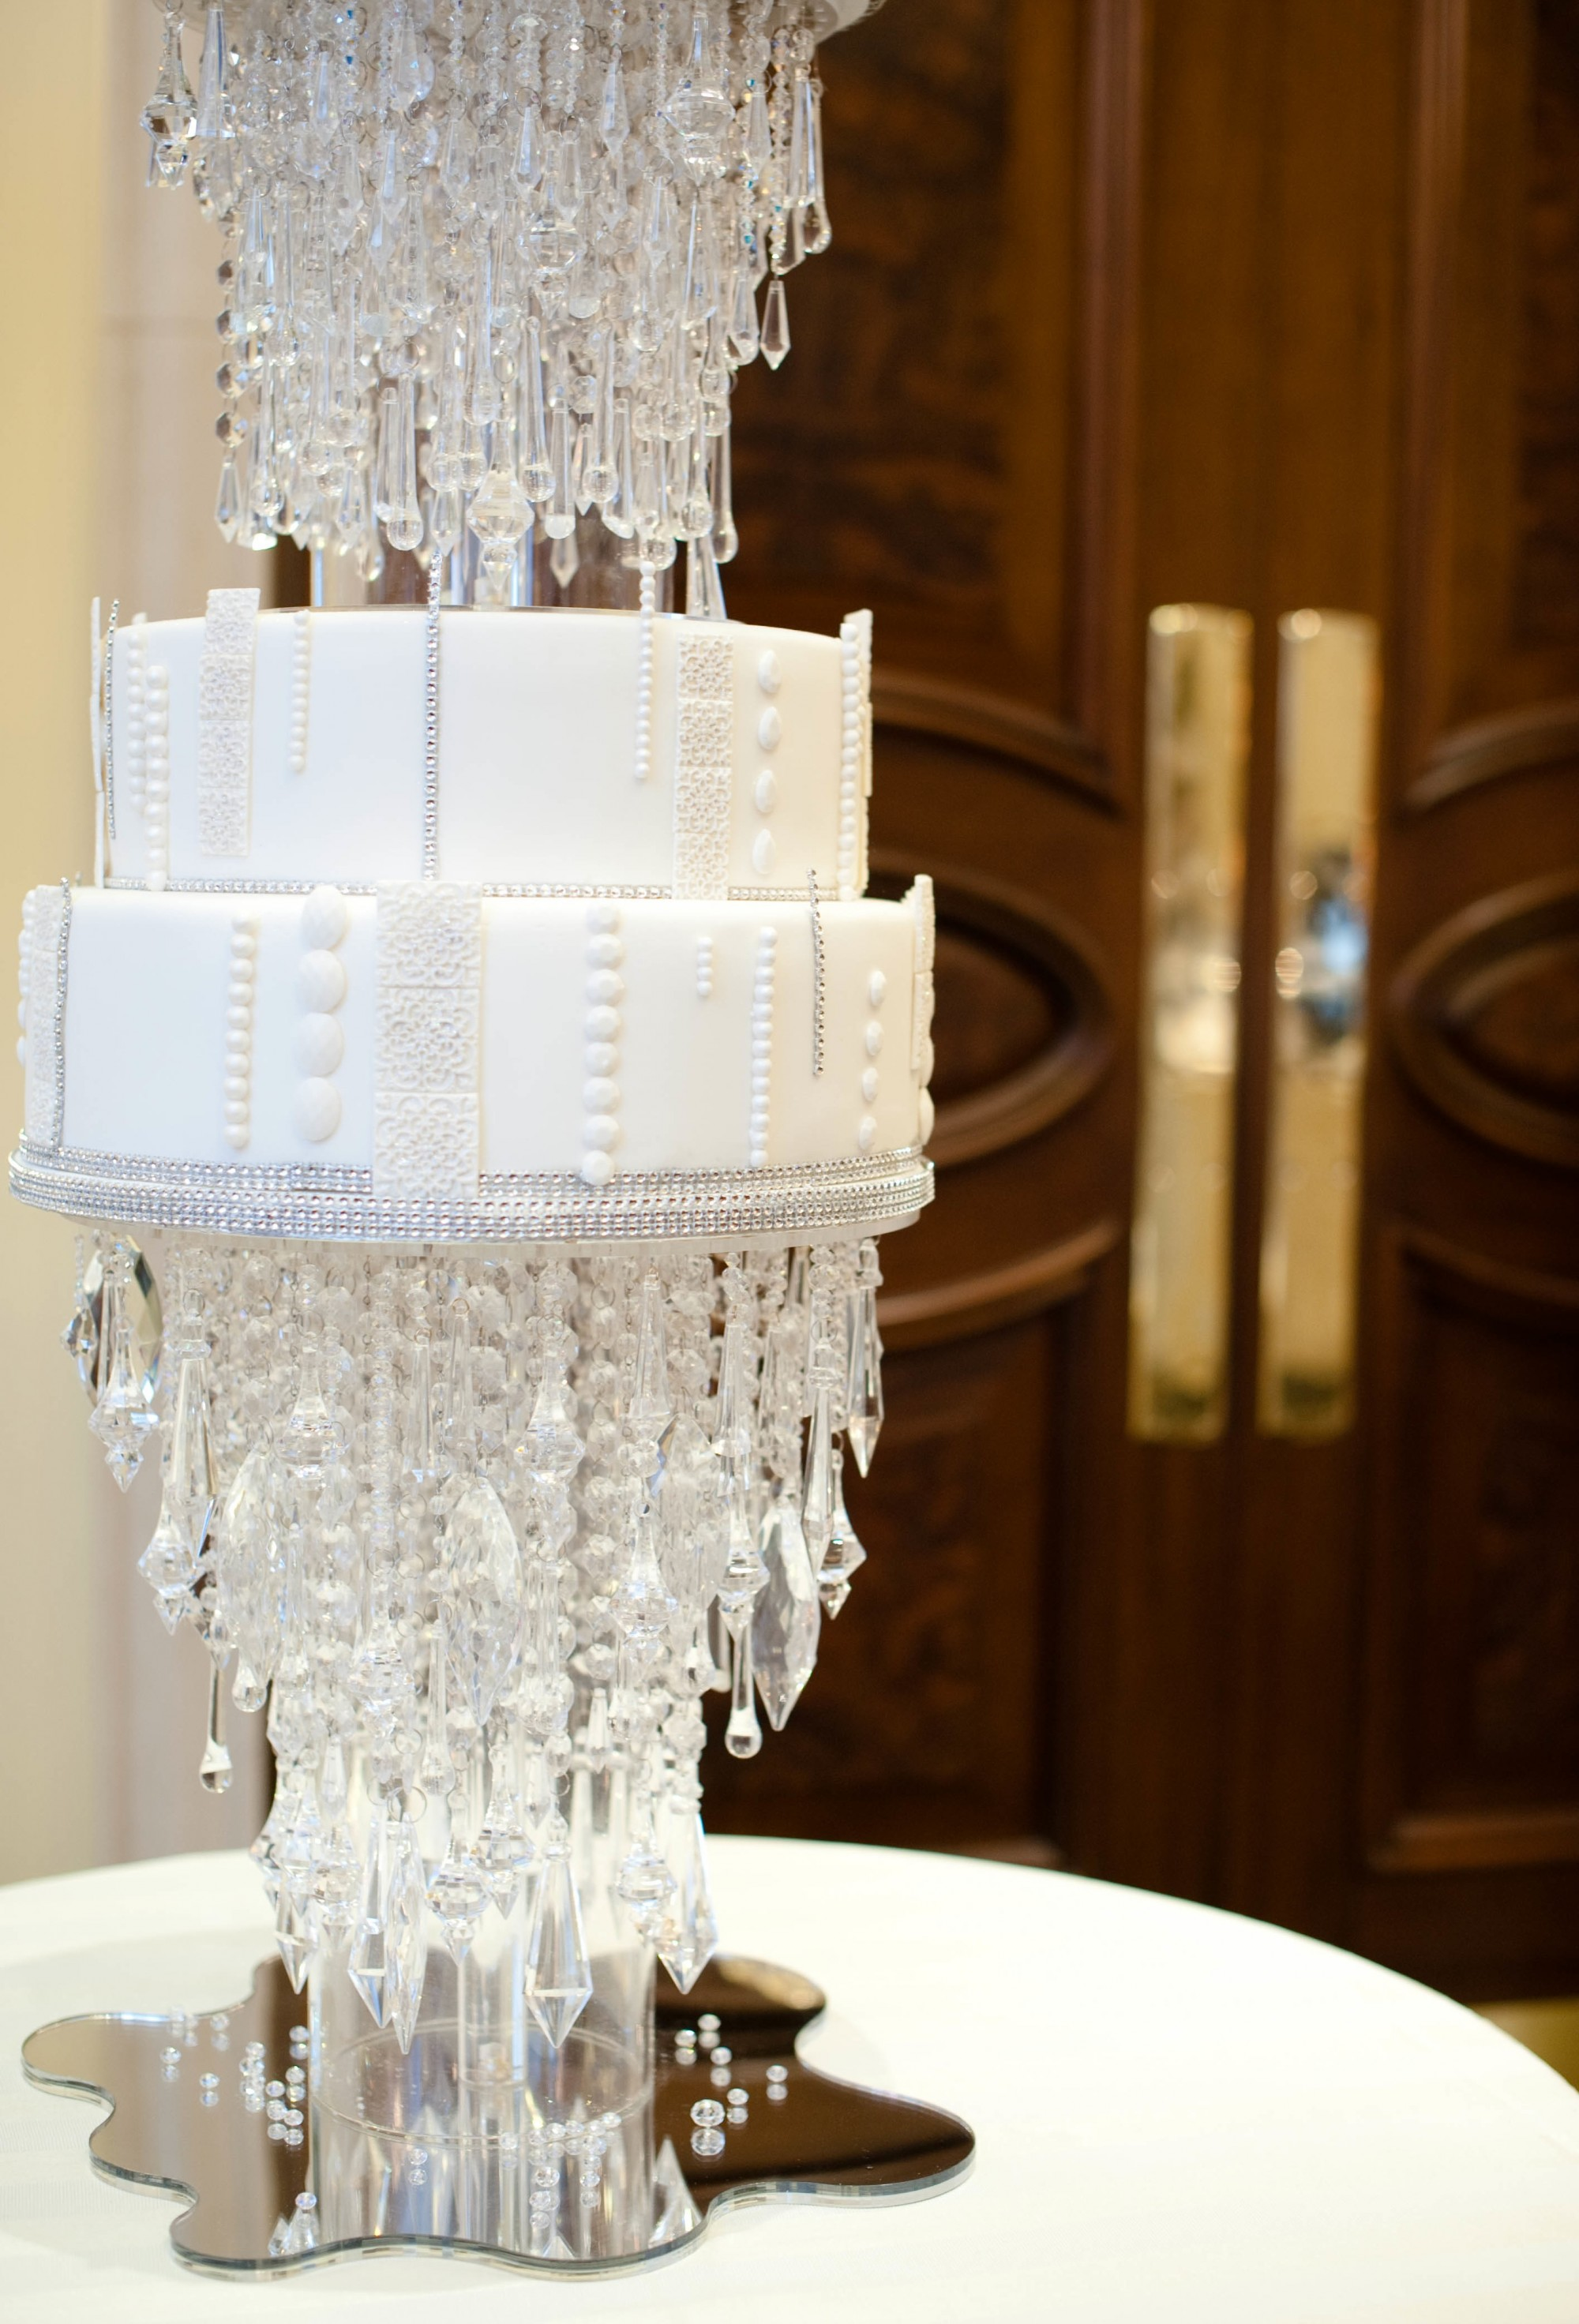 Top 10 Most Expensive Mouthwatering Wedding Cakes Therichest